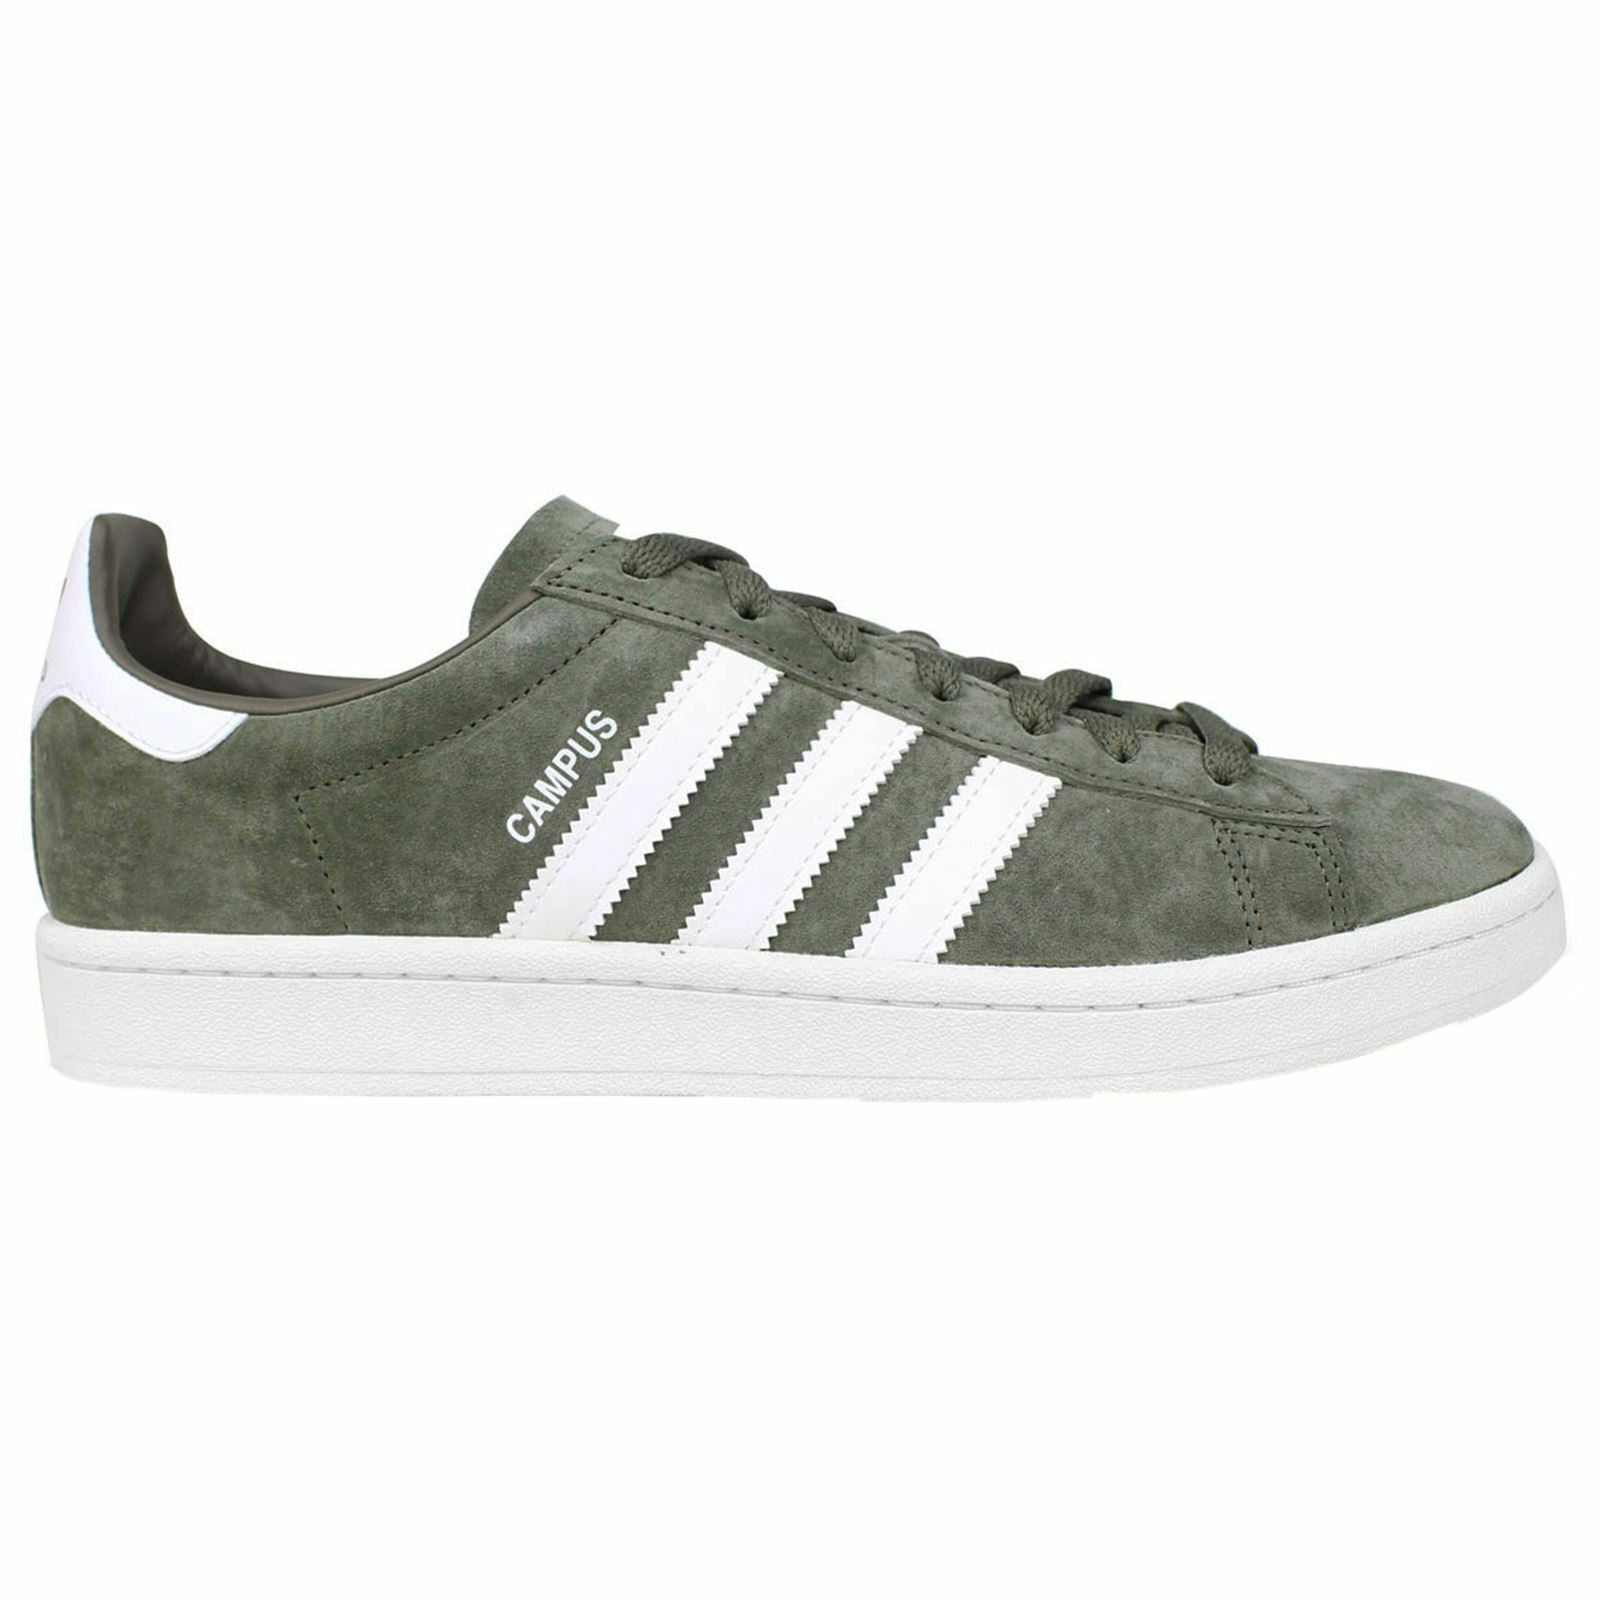 Adidas Campus Branch Footwear White Trainers Mens Suede Low-top Sneakers Trainers White ae2ac5